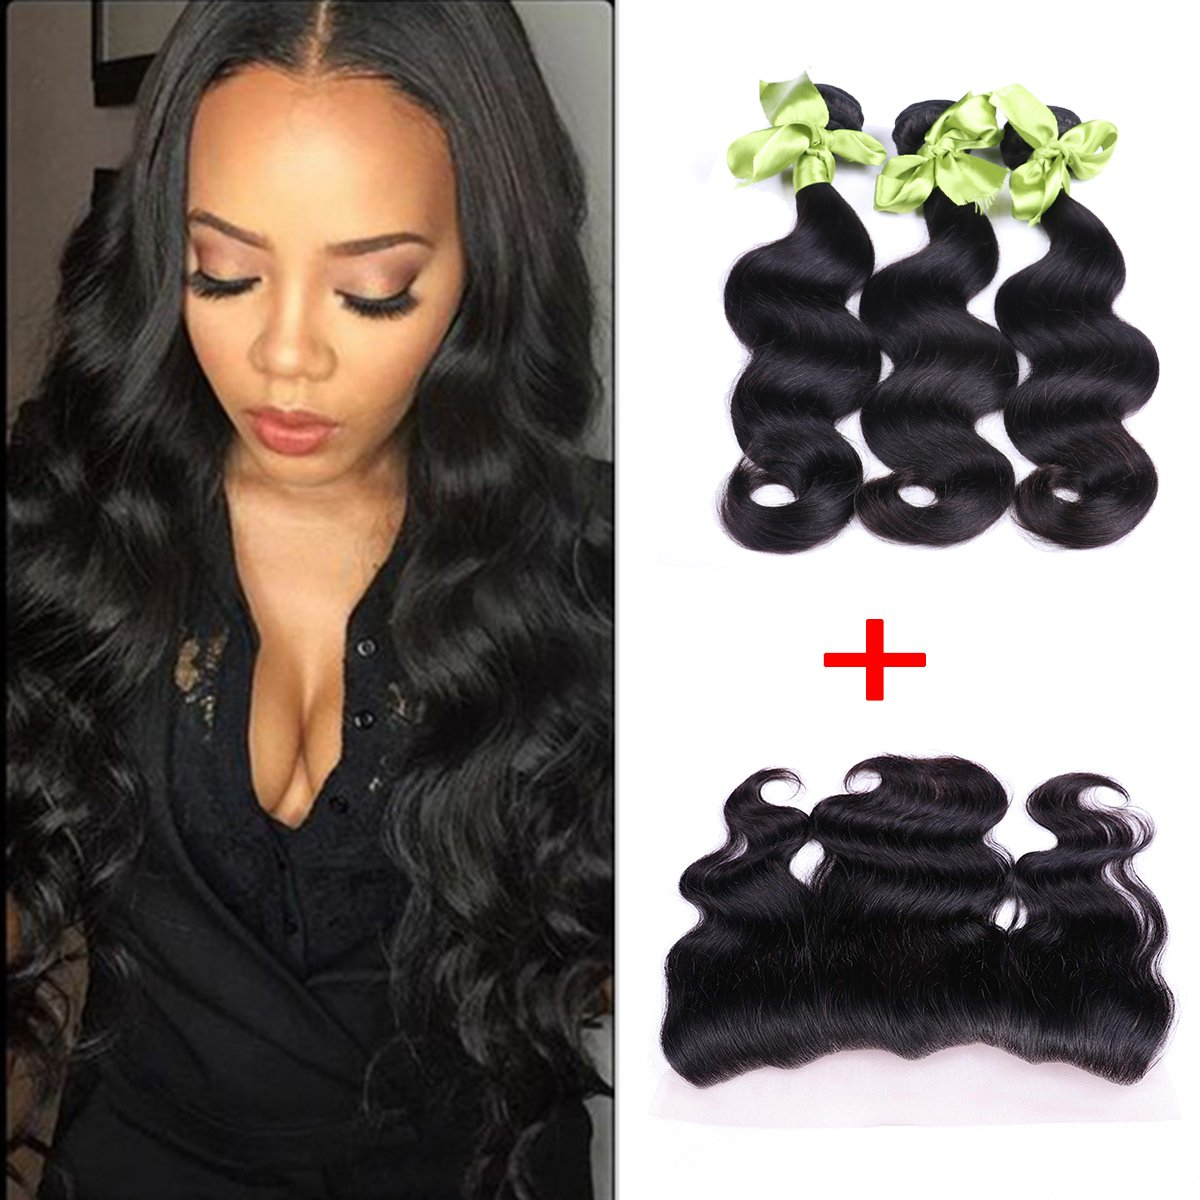 IUEENLY Brazilian Body Wave 3 Bundles With Frontal Free Part 13x4 Ear To Ear Lace Frontal Closure With Bundles Brazilian Virgin Human Hair Frontal (20 20 20+18inch) by IUEENLY